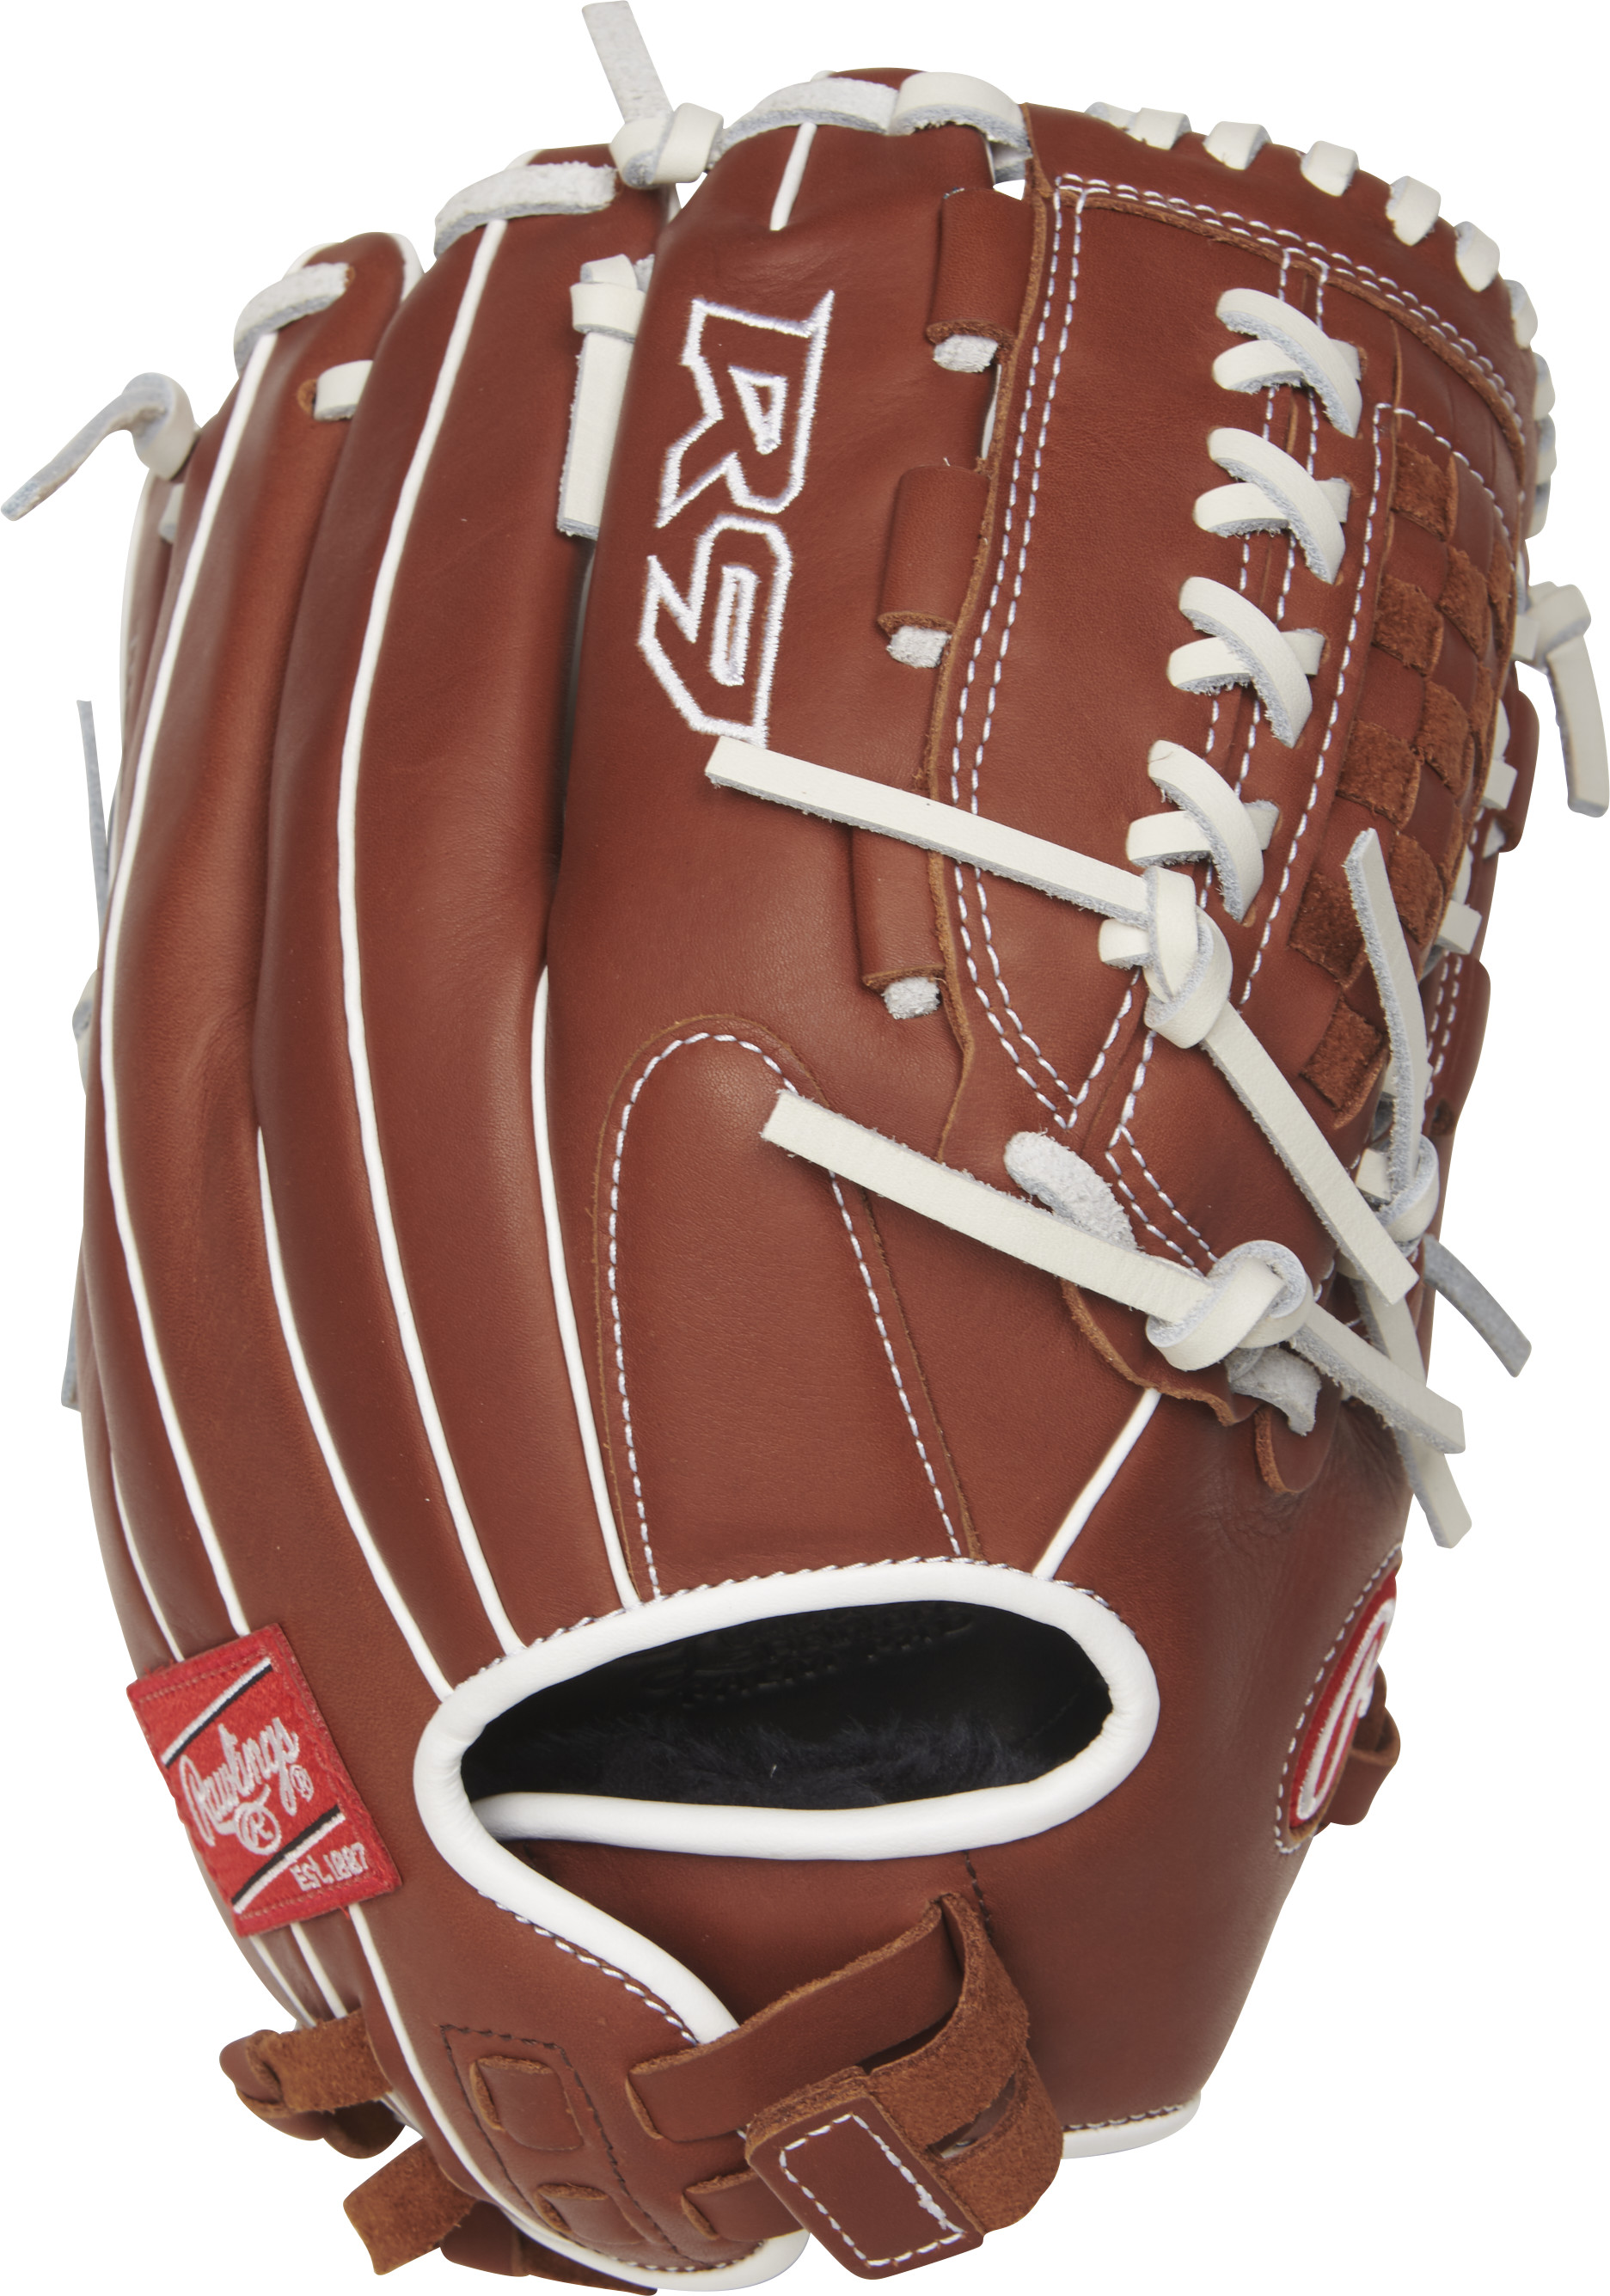 http://www.bestbatdeals.com/images/gloves/rawlings/R9SB125-18DB-2.jpg